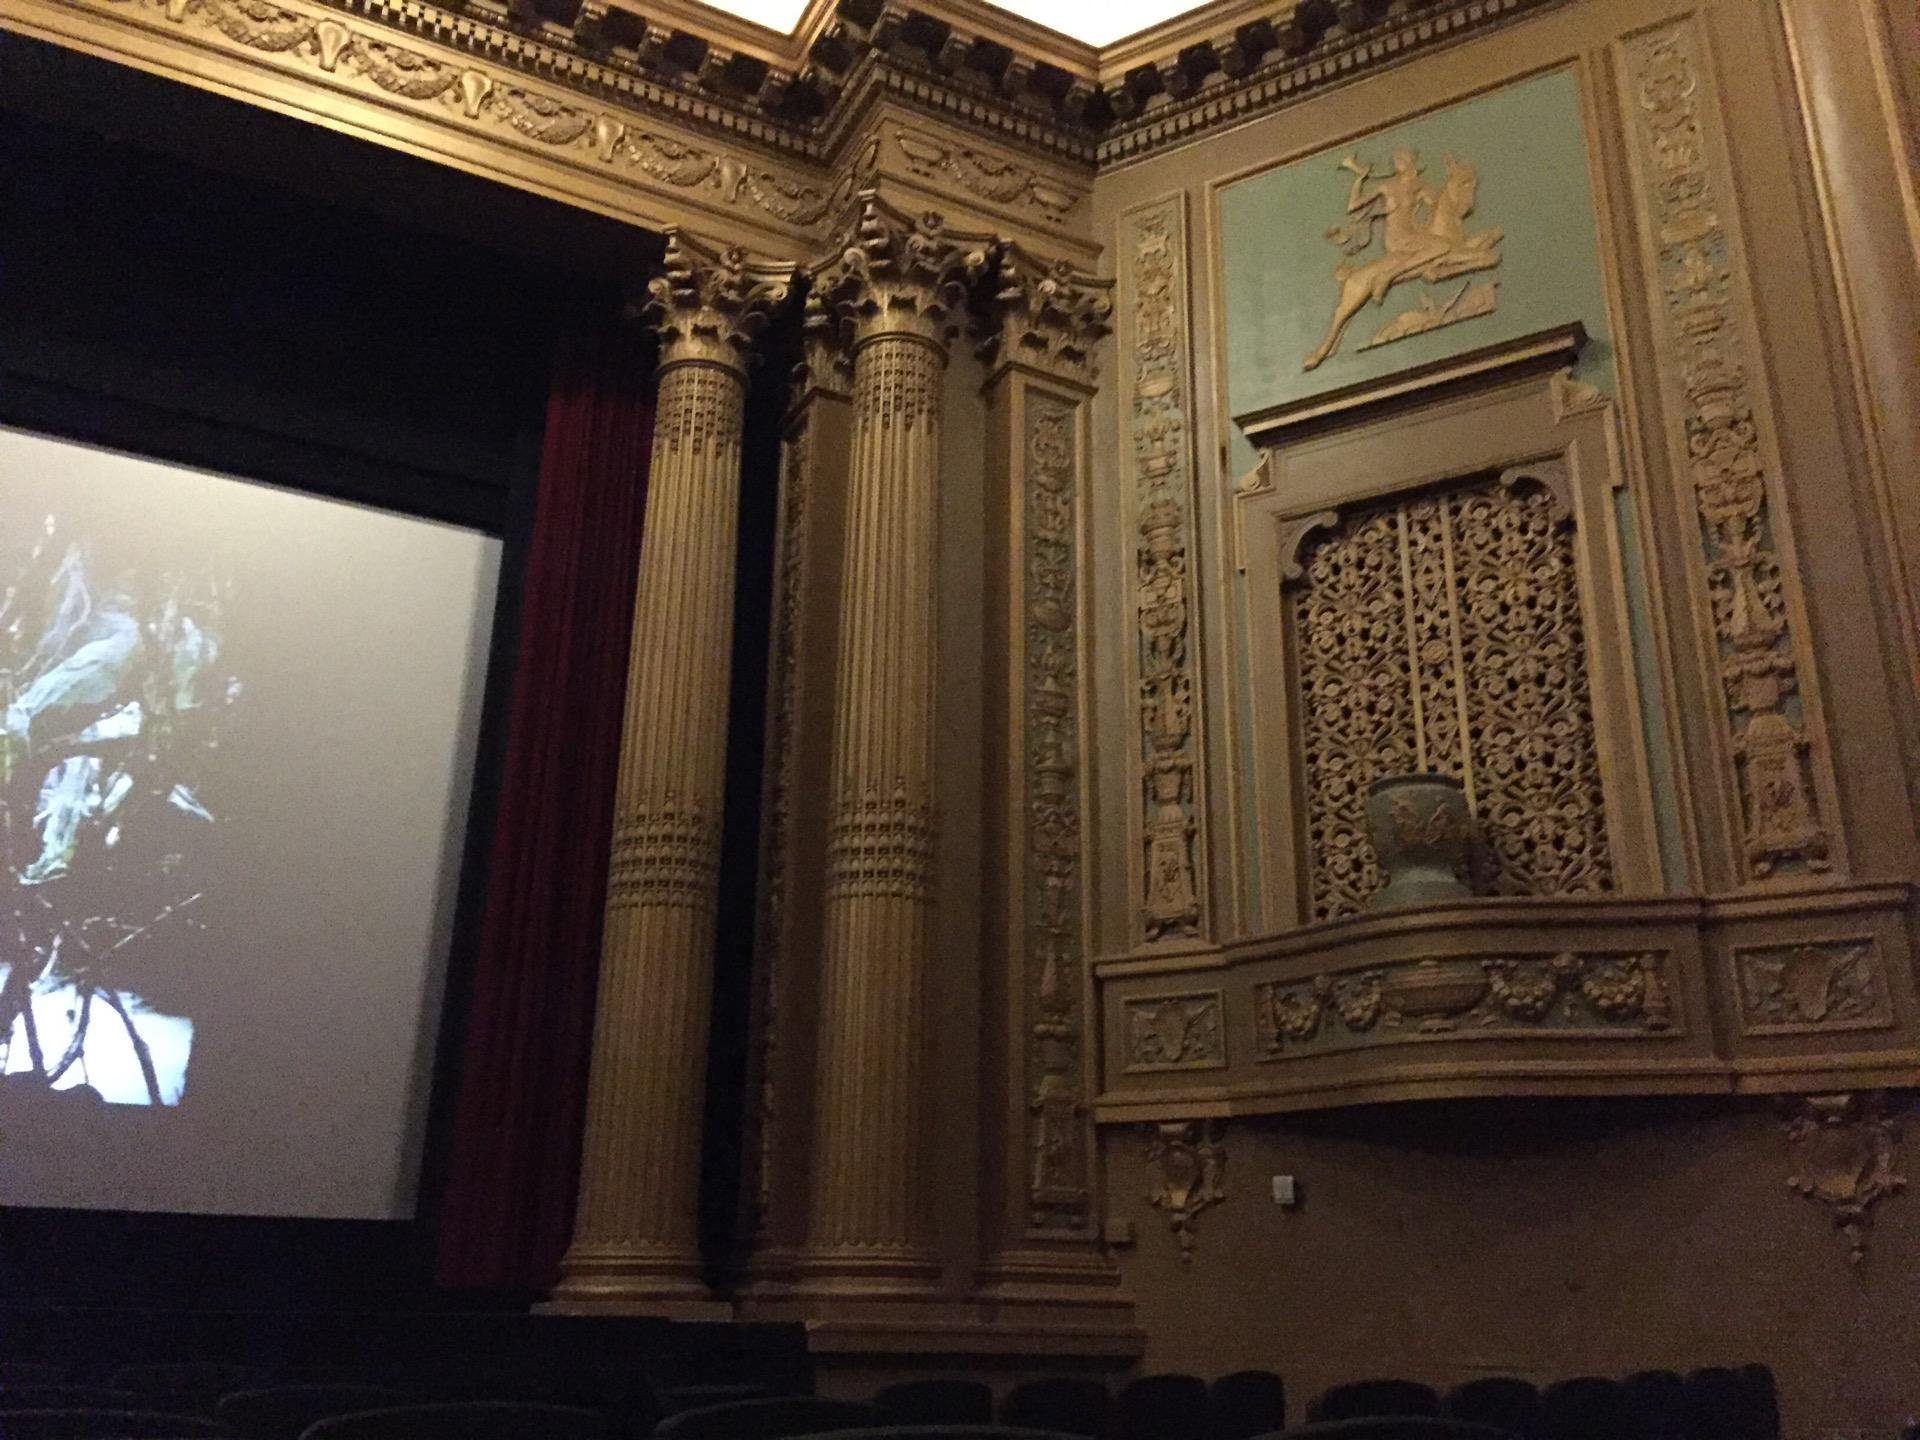 Reasons to visit San Francisco - Alamo Drafthouse Cinema New Mission